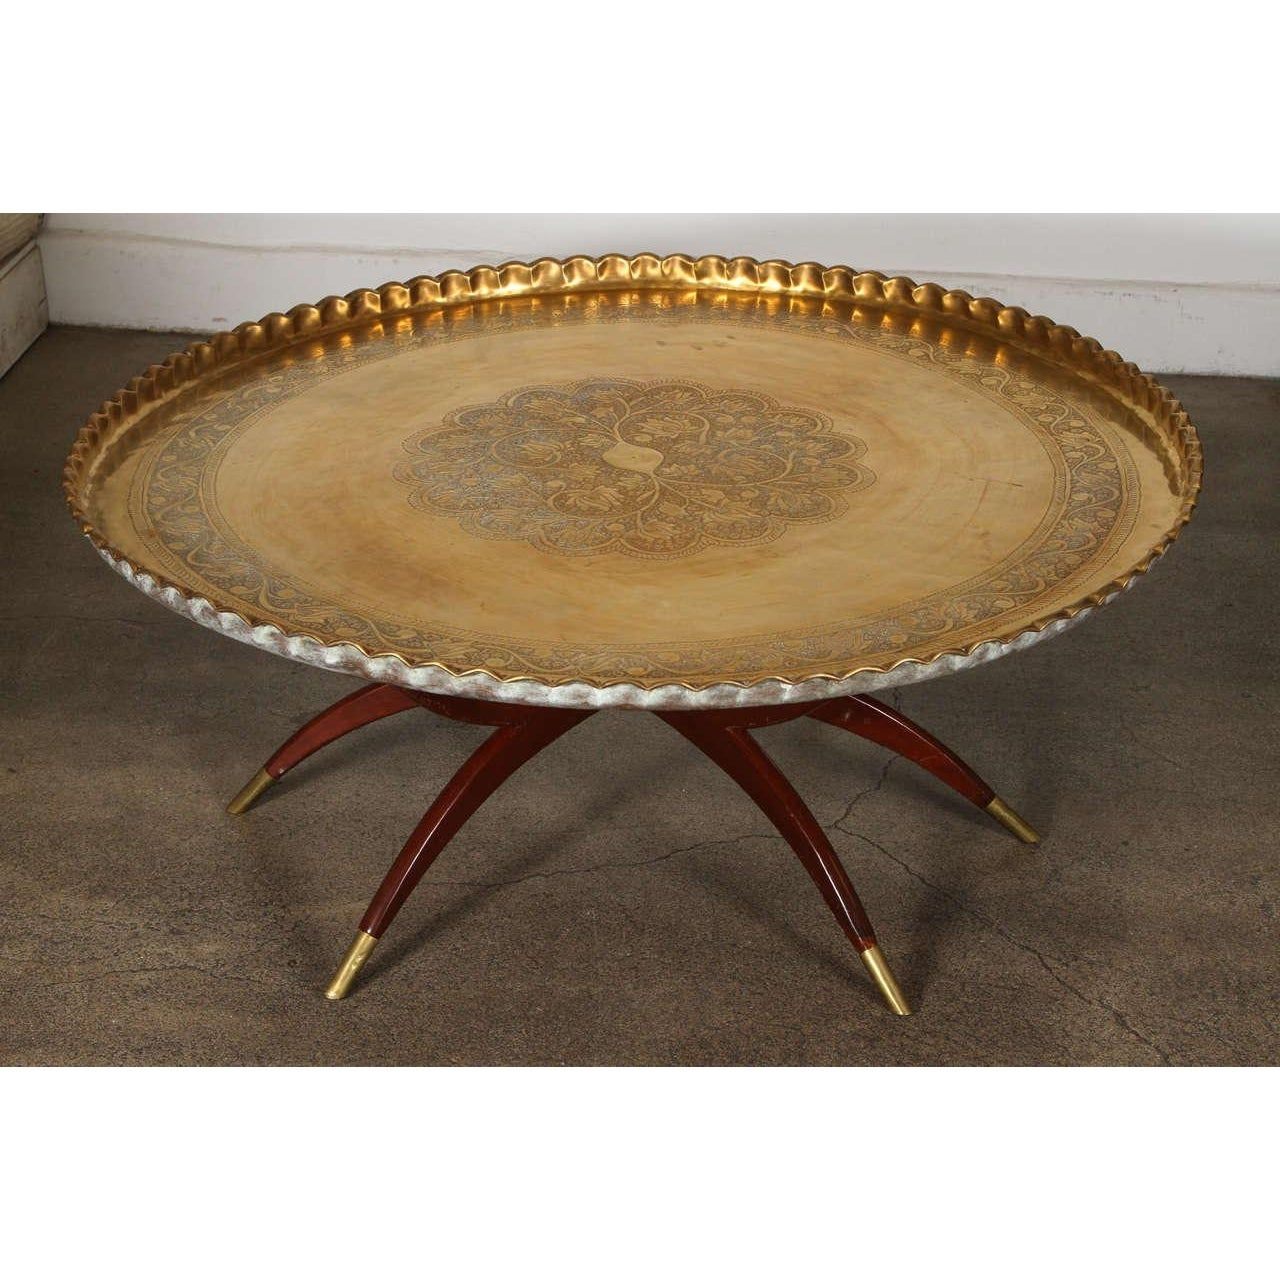 Exquisite Large Moroccan Round Brass Tray Table On Folding Stand Decaso Brass Tray Table Brass Round Table Brass Tray [ 1280 x 1280 Pixel ]